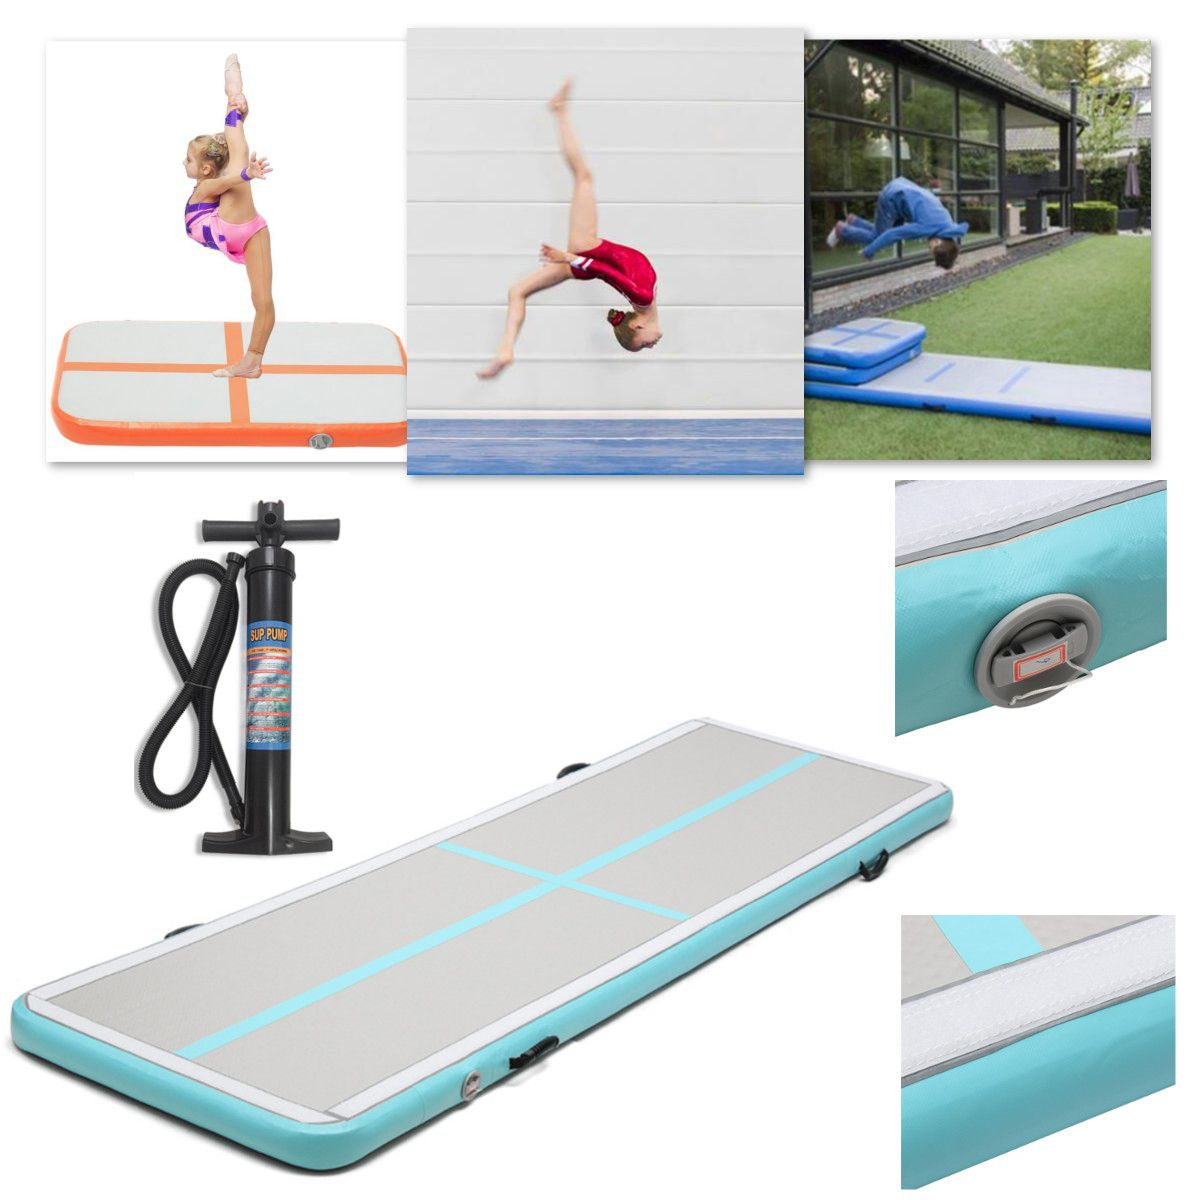 mat track gymnastics floor home pin air for inflatable gym tumbling mats